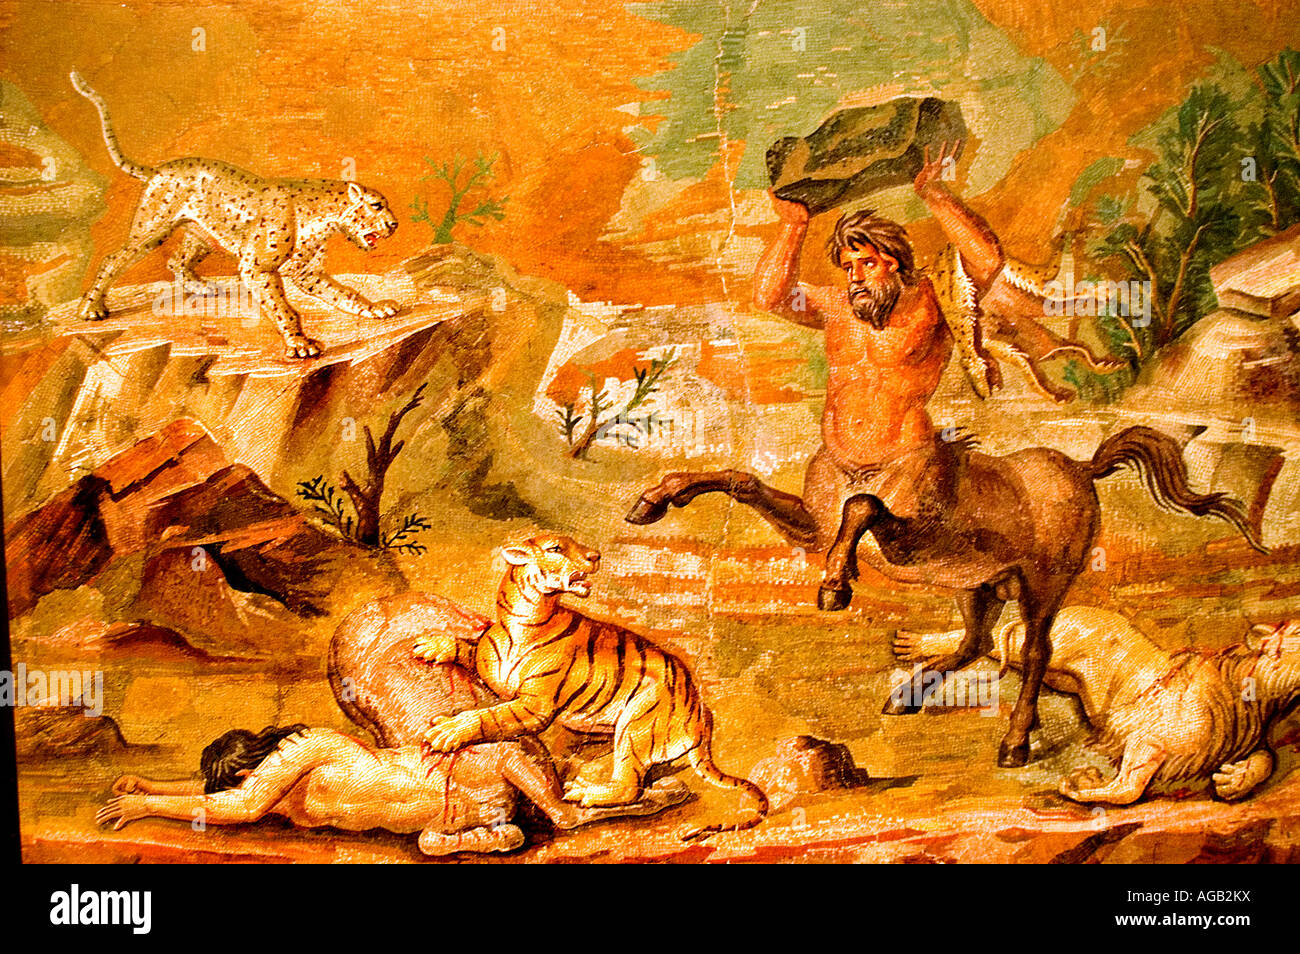 Mosaic from Hadrian s villa battle between centaurs and a tiger and lion near Tivoli and Rome - Stock Image